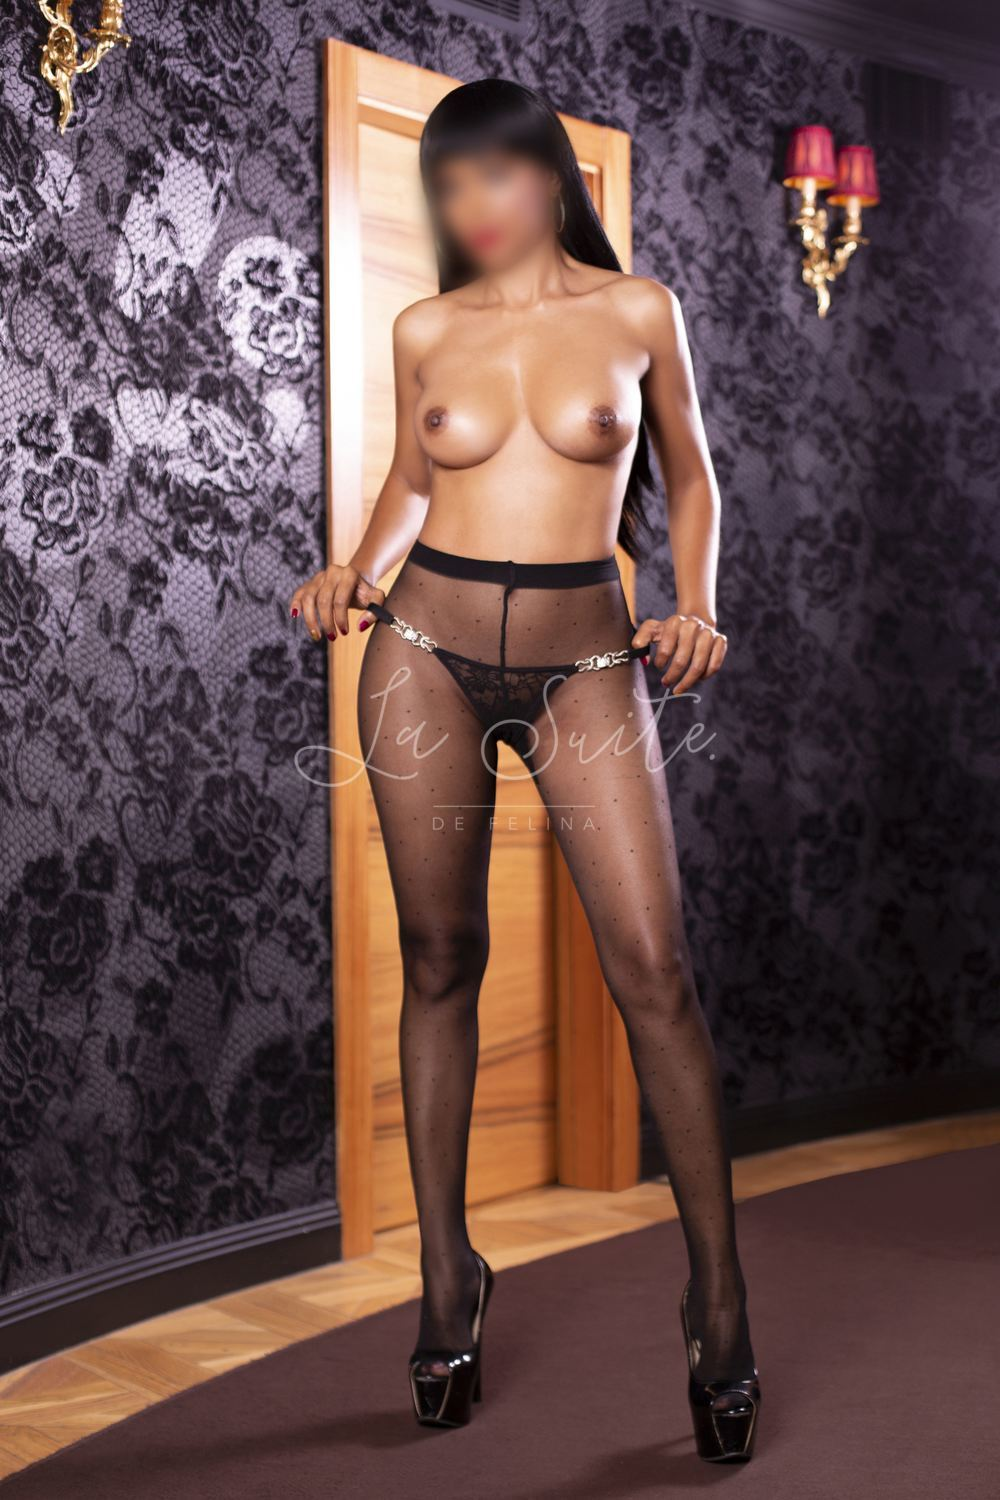 Latin slut with natural breasts in Barcelona, with a black mesh, Jessica